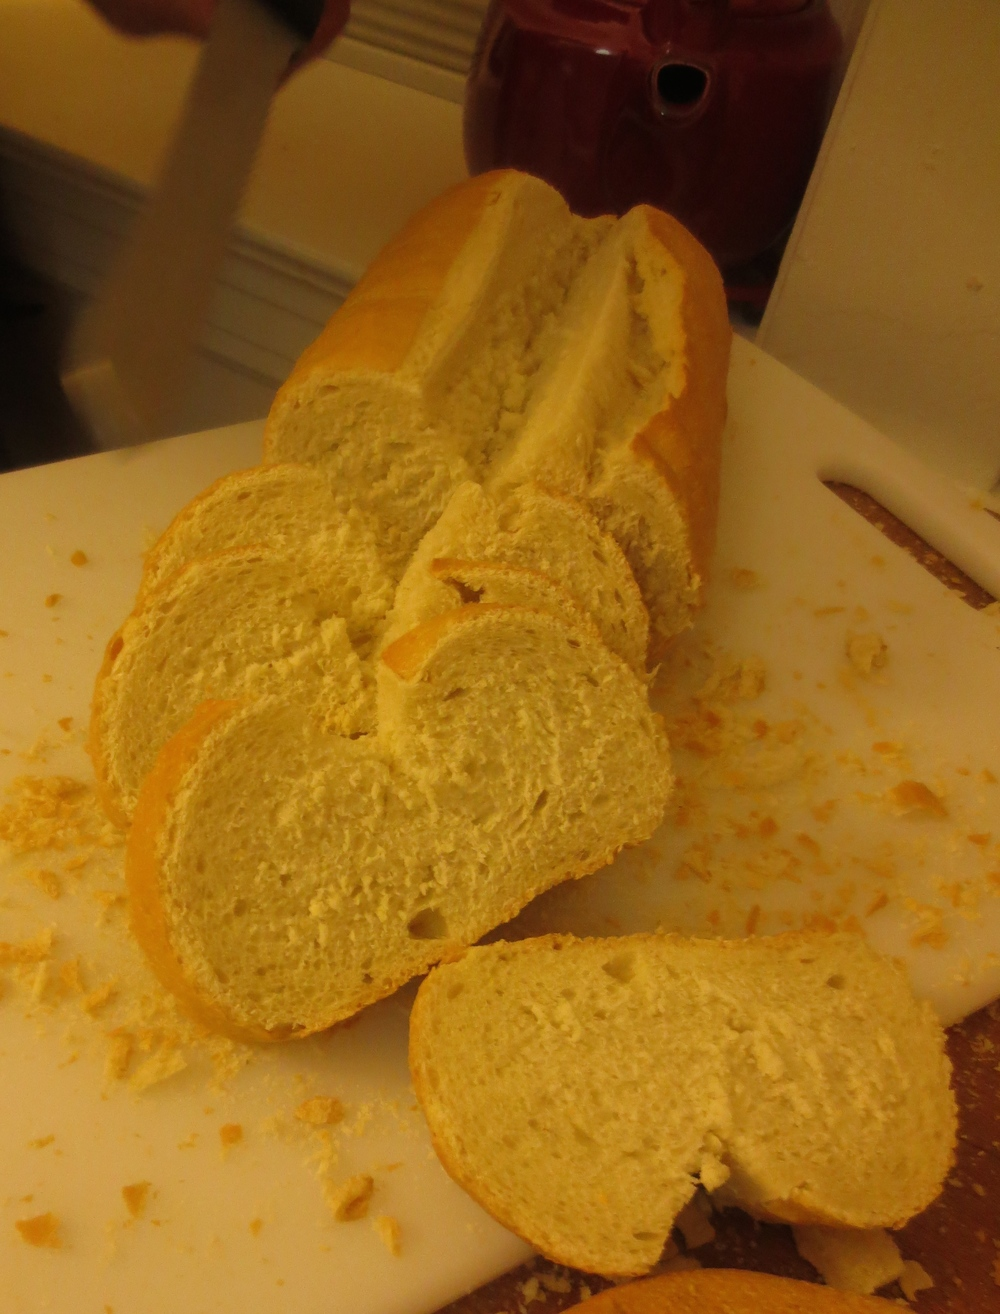 Sliced Heart Shaped Bread